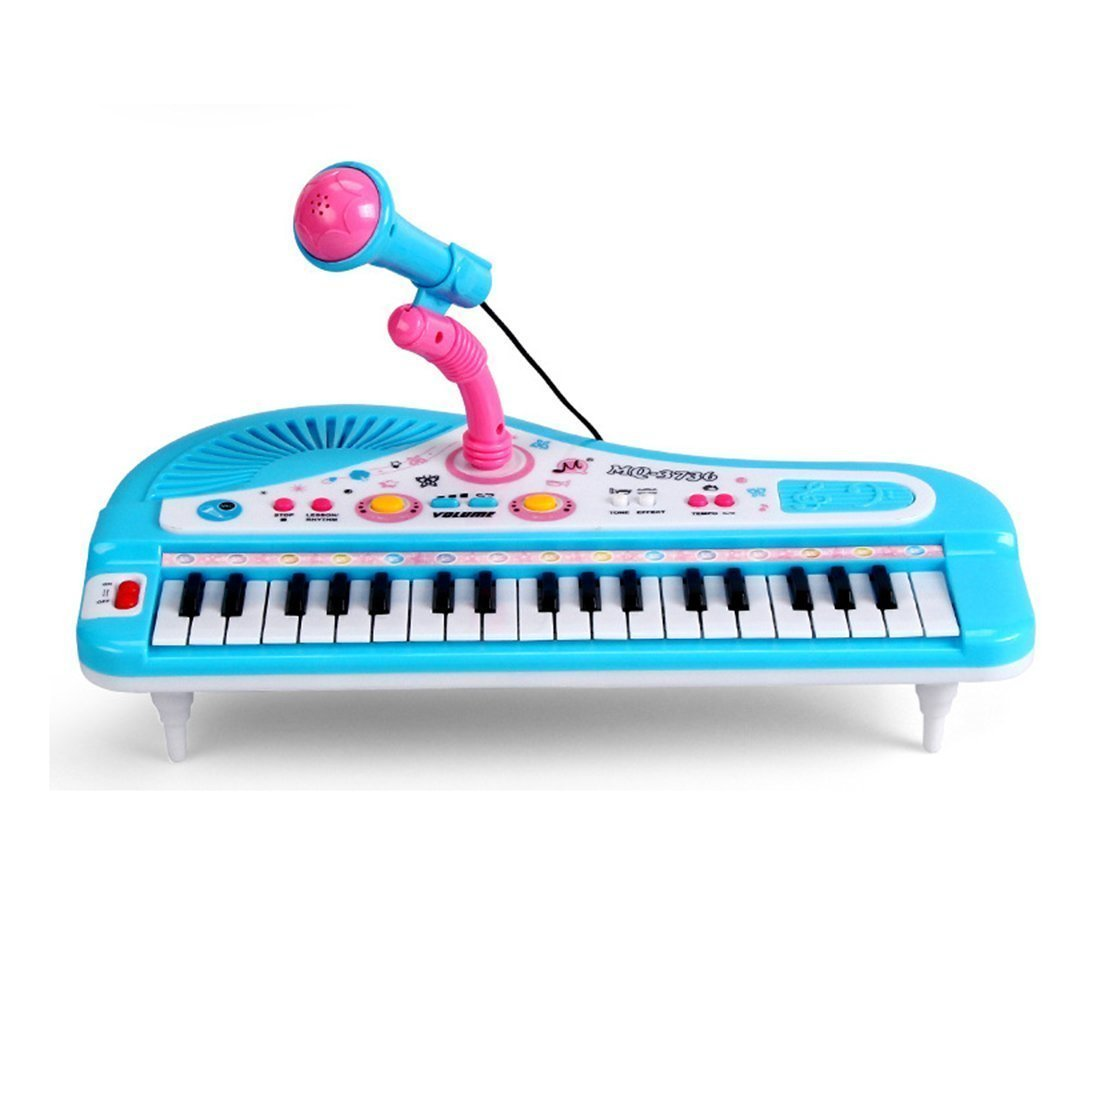 37-Key Electronic Keyboard, multifunctional Keyboard Piano Music Set with Microphone Educational Toy for toddlers Kids Children (Blue) SK-0268-FBA